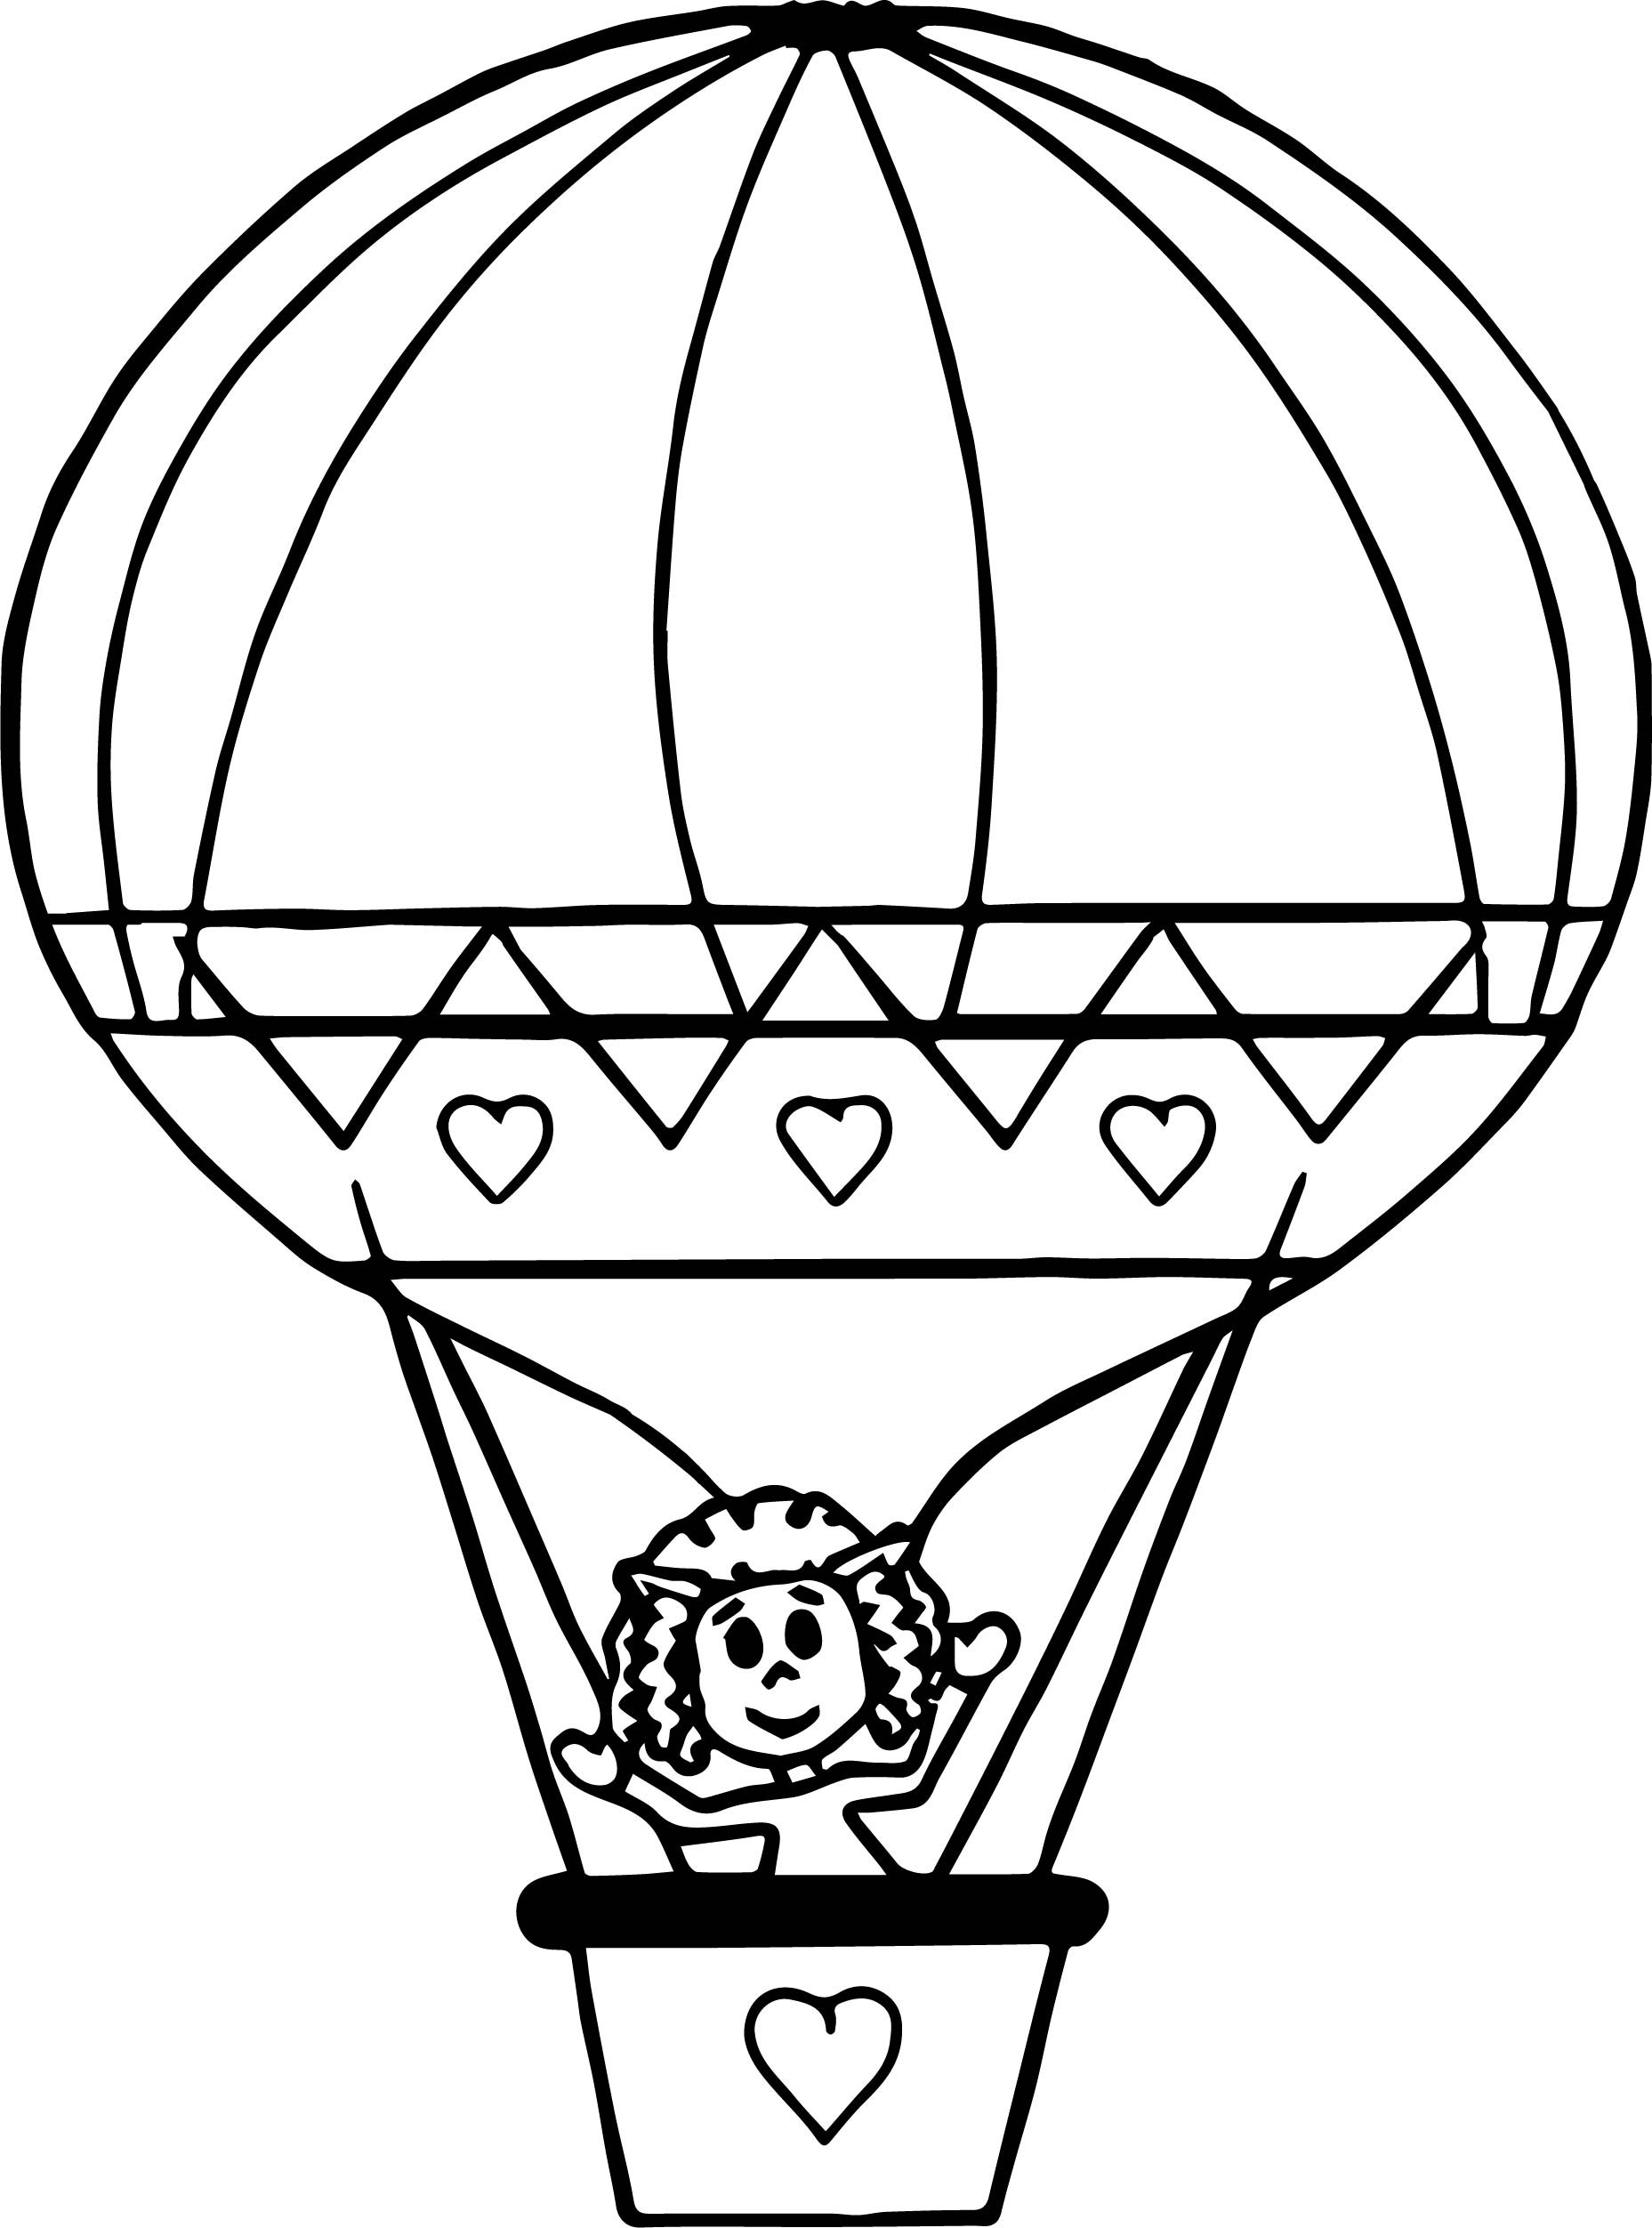 hot air balloons coloring pages printable hot air balloon coloring pages for kids cool2bkids air coloring pages balloons hot